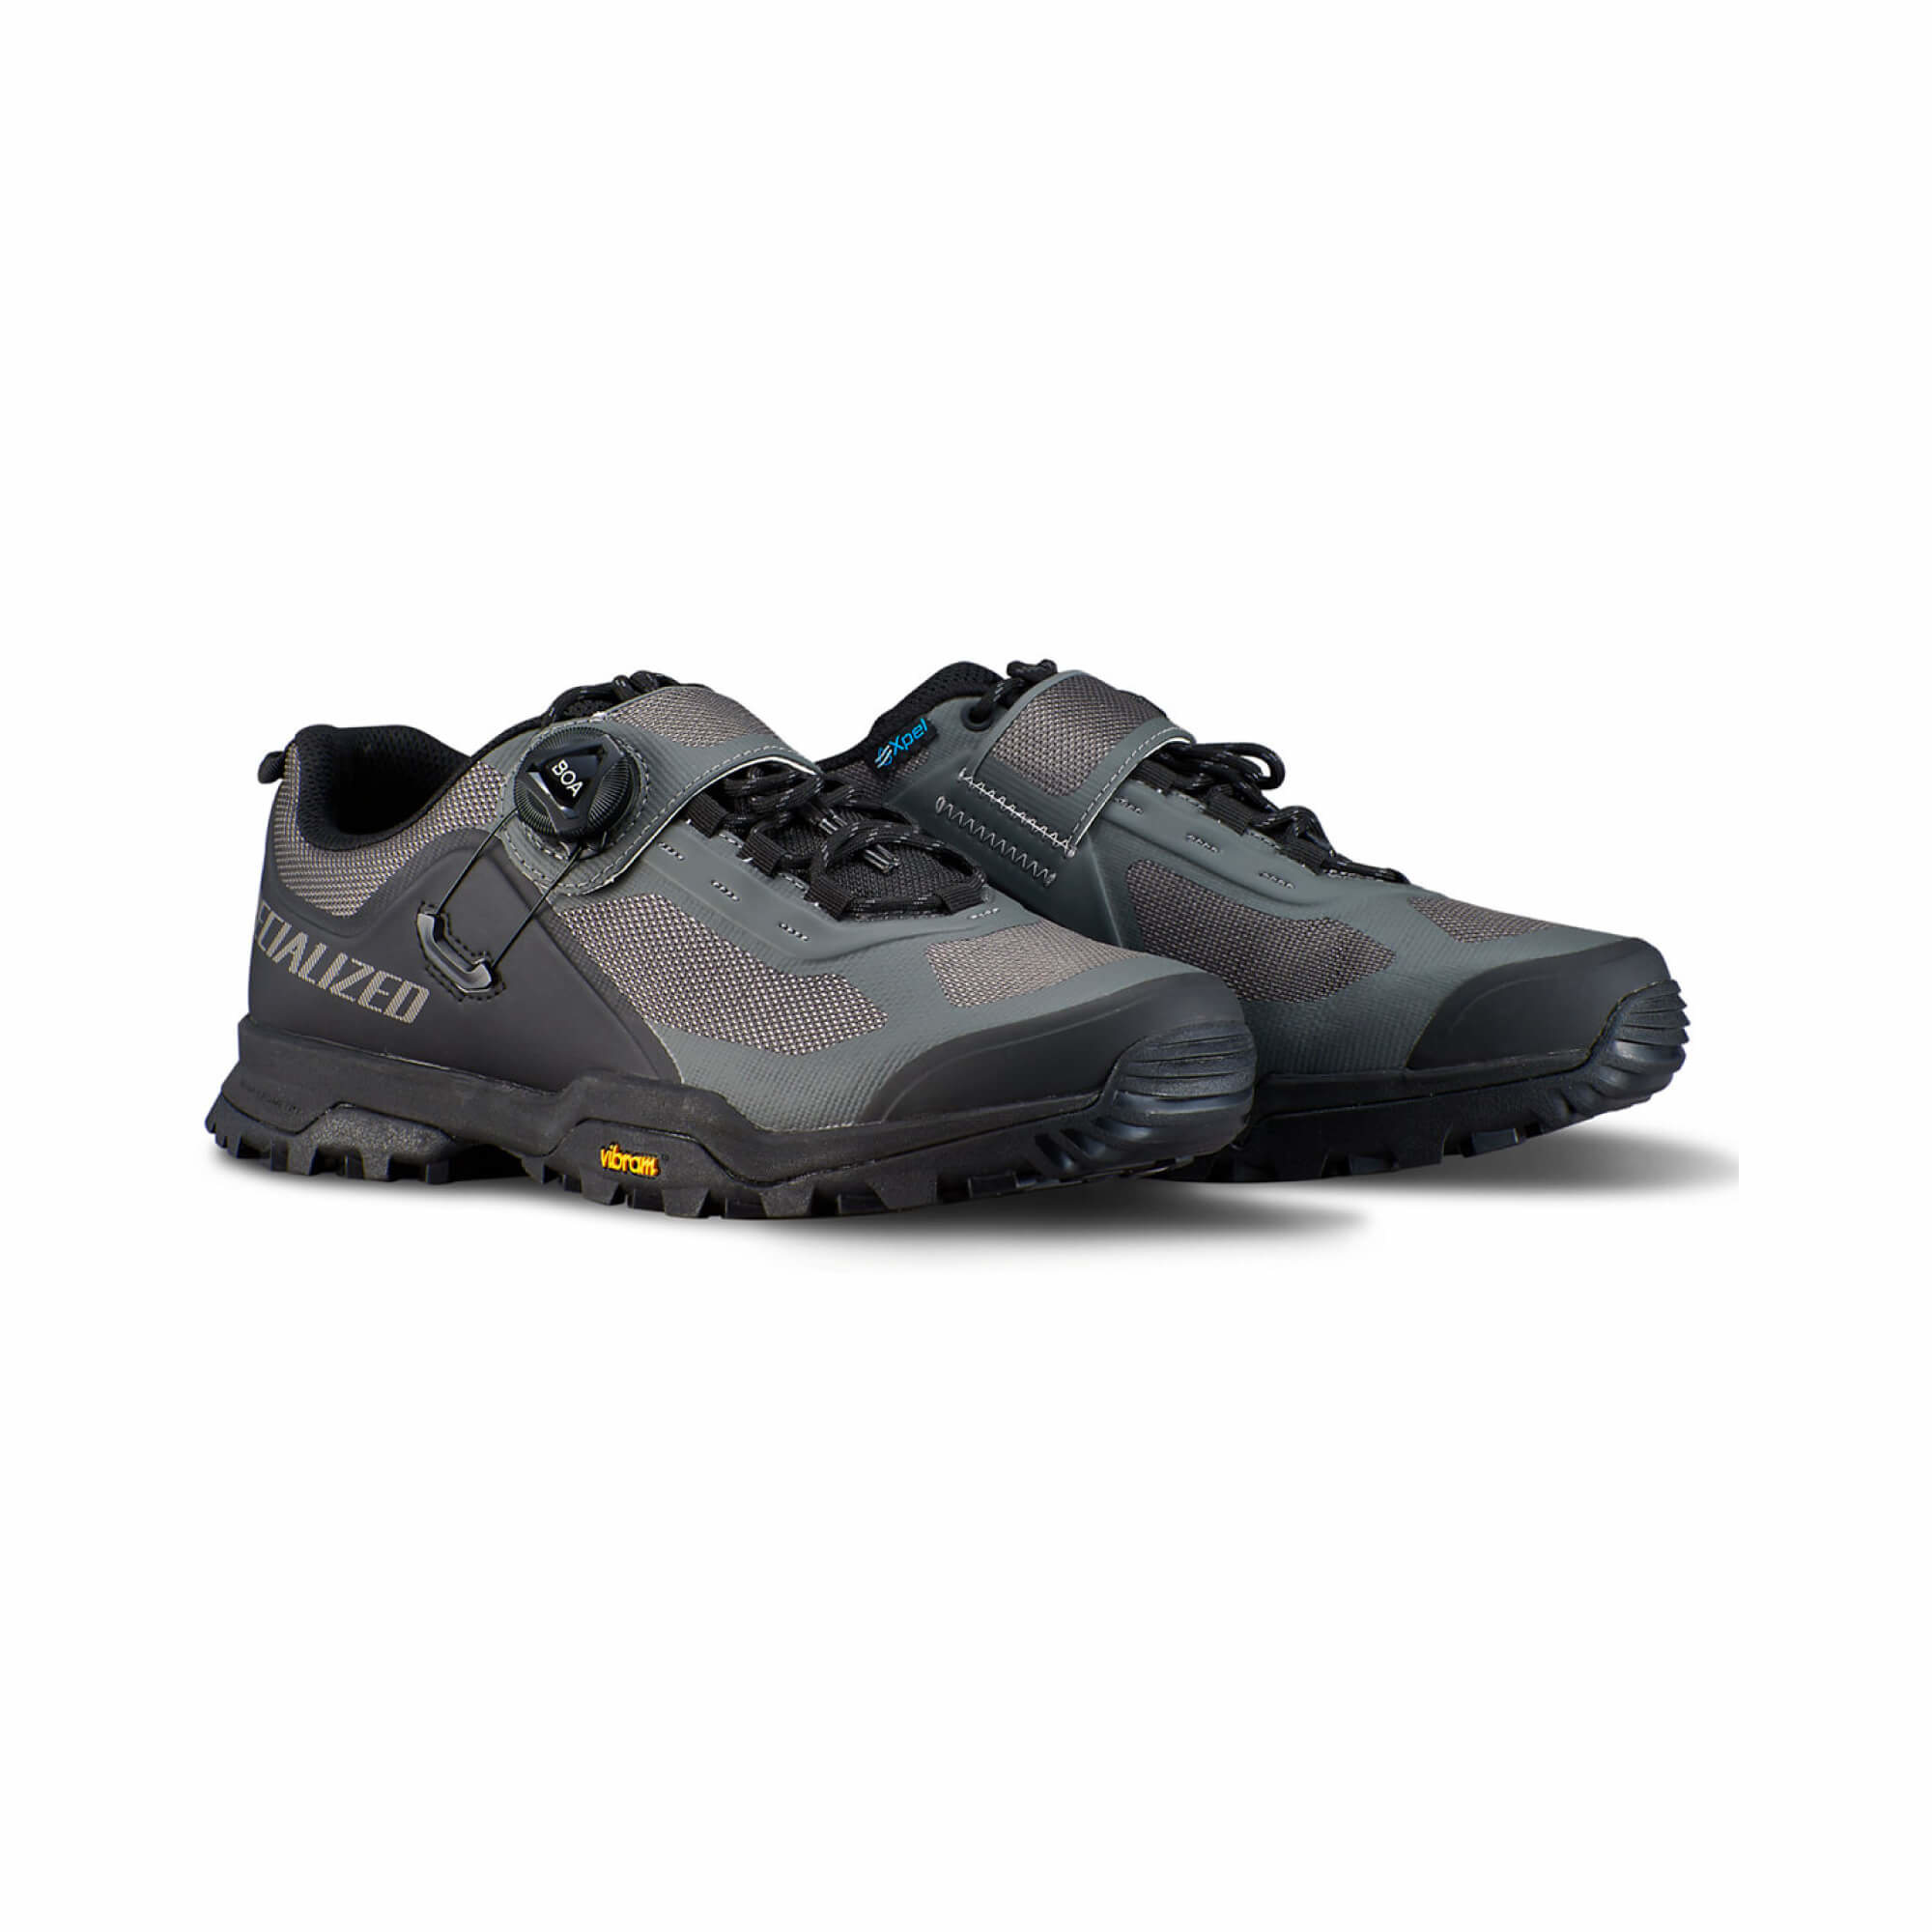 Rime 2.0 Mountain Bike Shoes-4